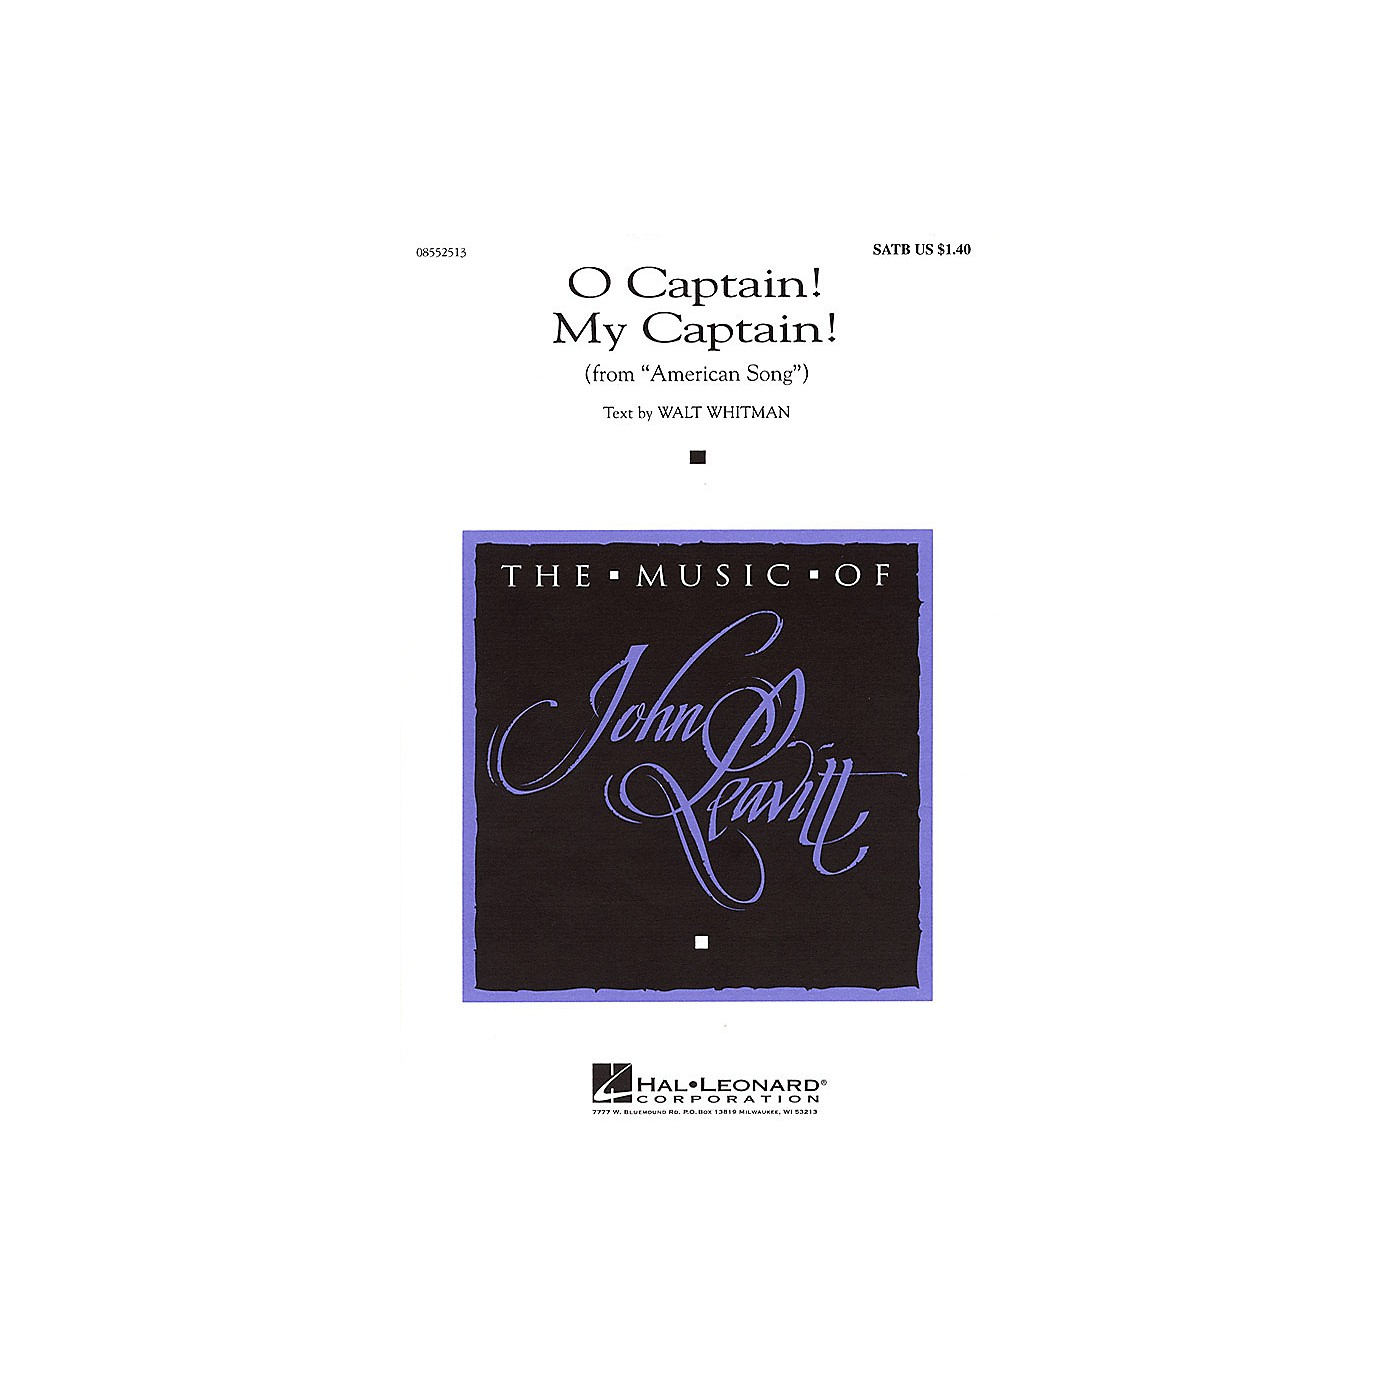 Hal Leonard O Captain! My Captain! (from American Song) SATB composed by Walt Whitman thumbnail